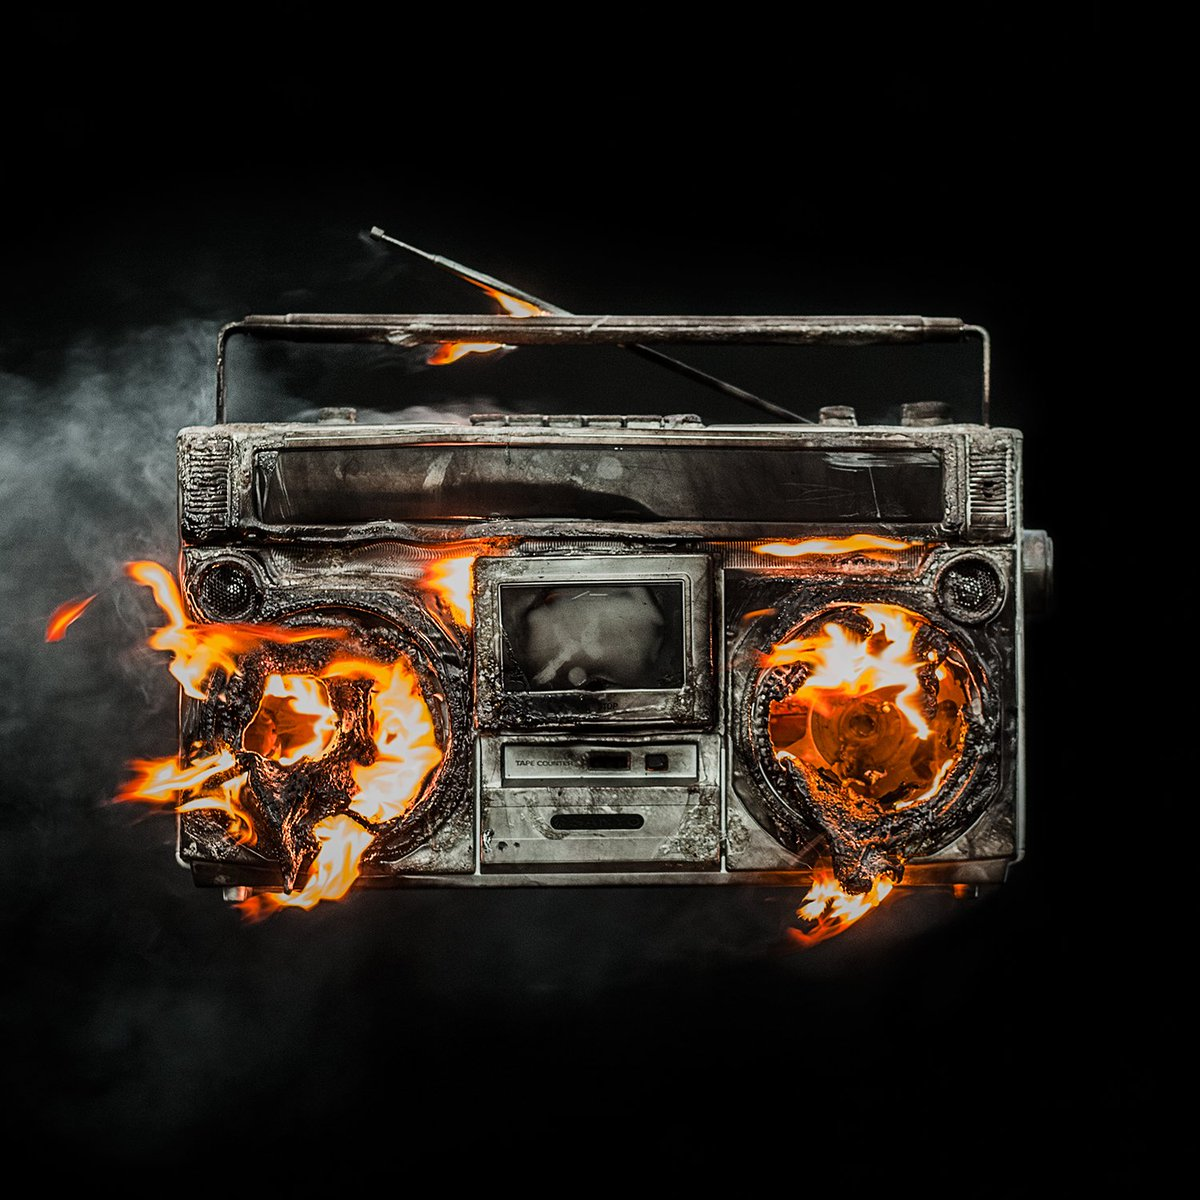 Pre-Order the new Green Day album 'Revolution Radio' and get the song instantly at https://t.co/Eiare9J9I0 https://t.co/r03fnIFy3v